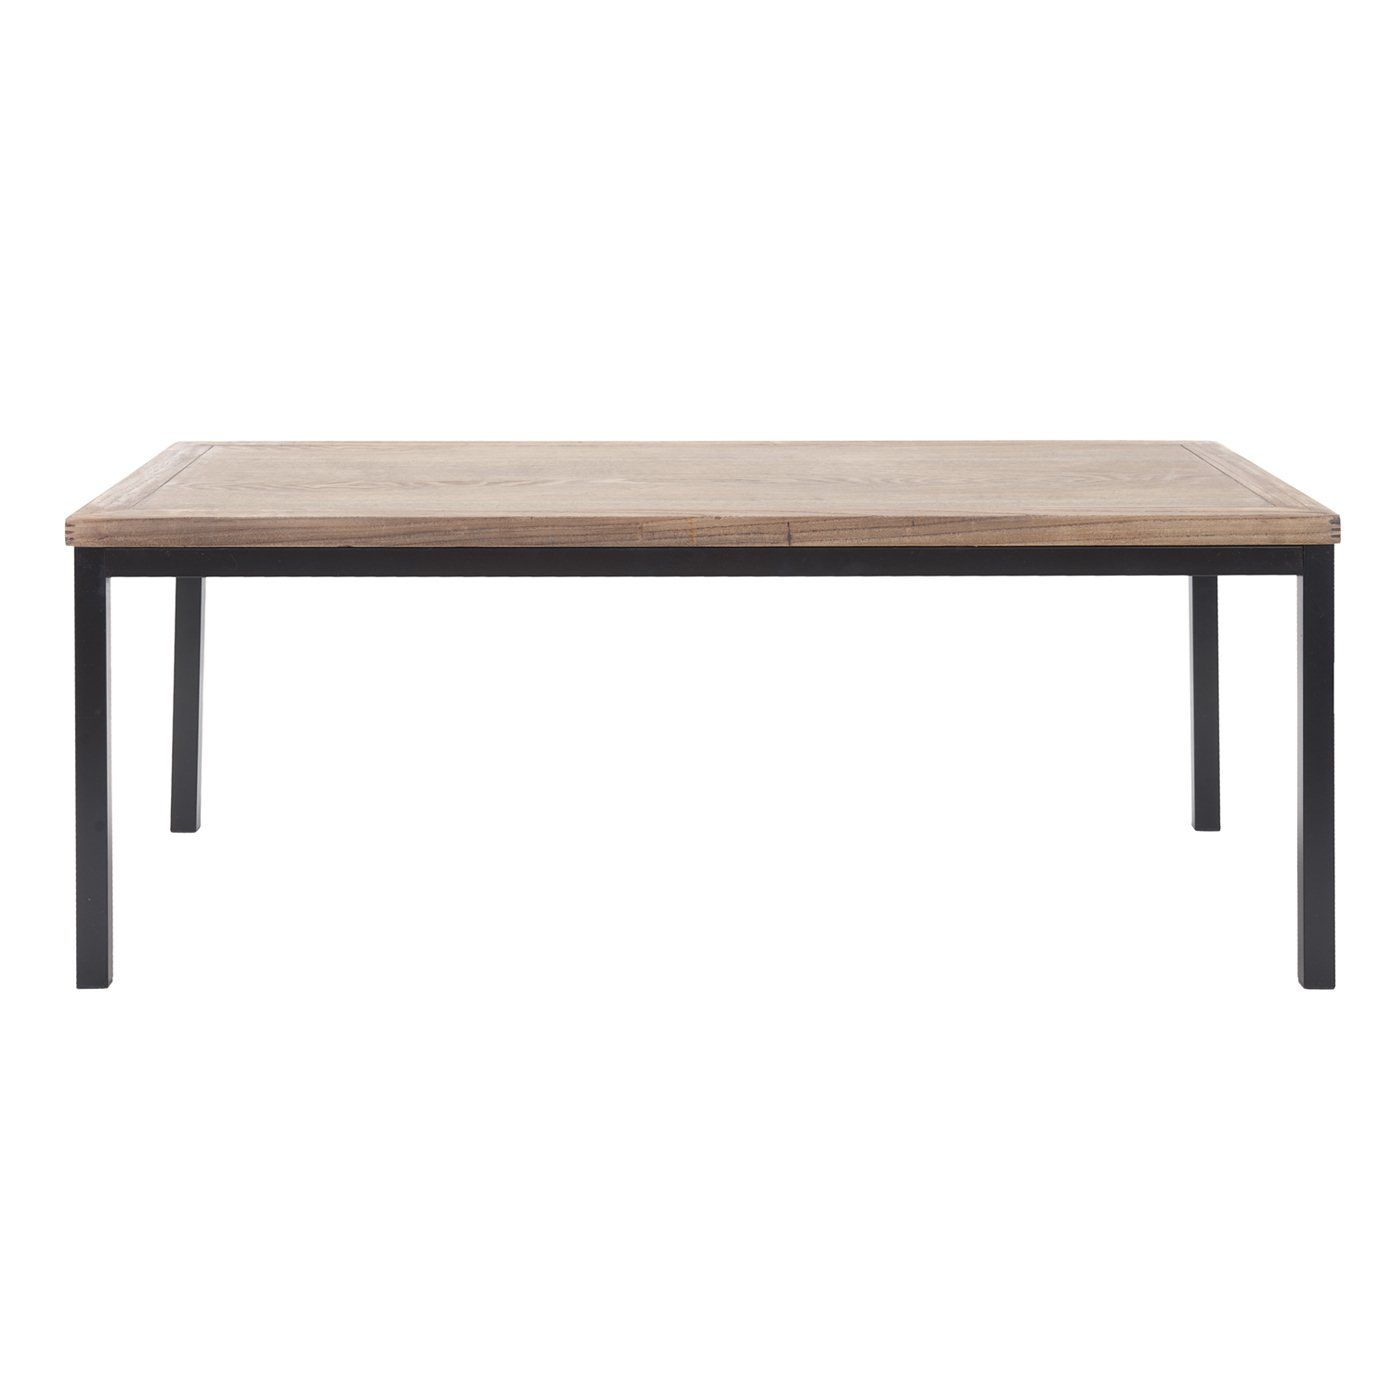 Safavieh Furniture AMH6588A Dennis Coffee Table at Lowe s Canada